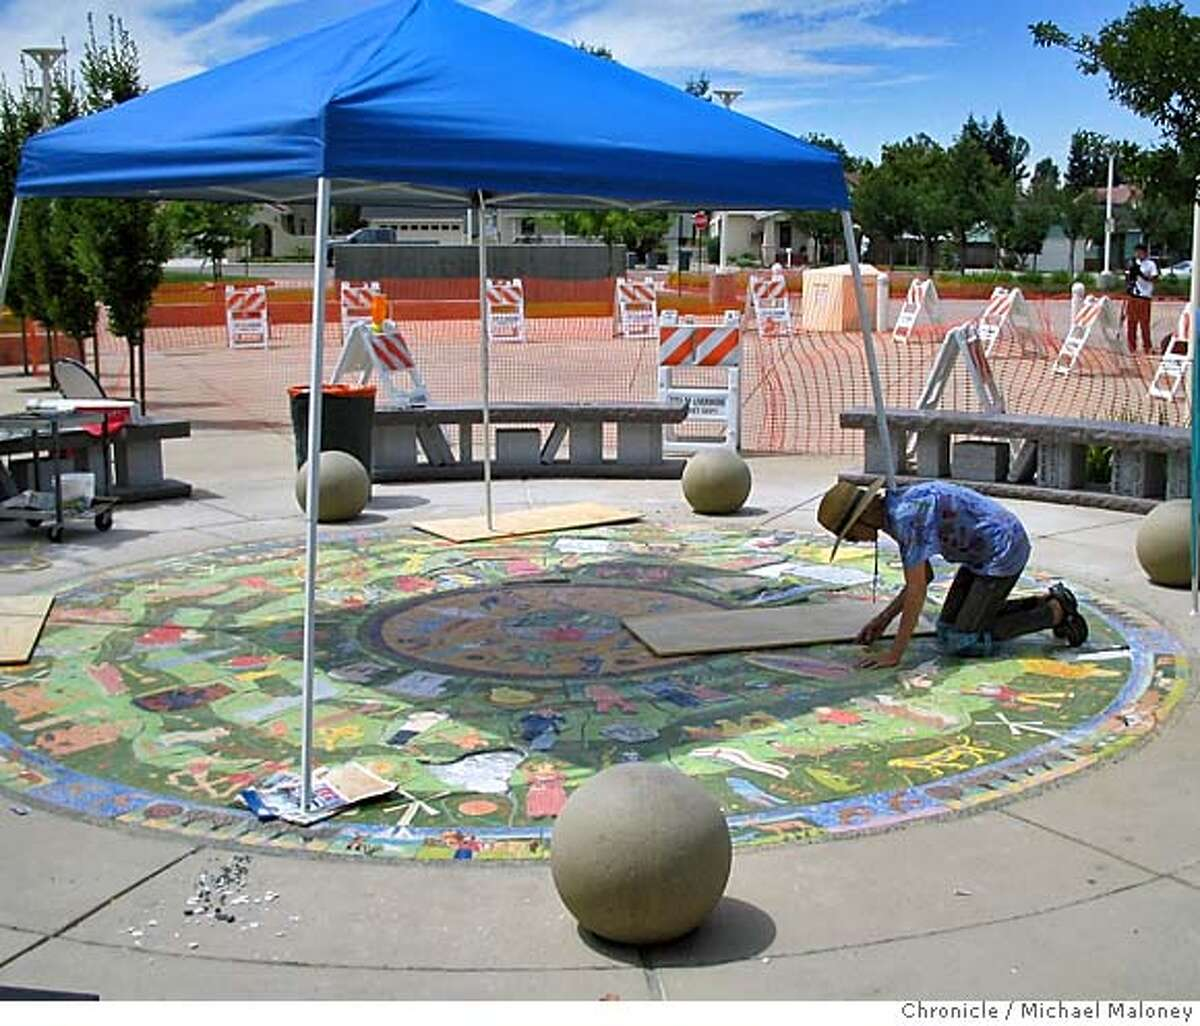 Miami artist Maria Alquilar works on her art piece outside the front entrance to the Livermore library. Miami artist Maria Alquilar arrived in Livermore Sunday to correct the $40,000 ceramic mural she created outside Livermore's new public library. She replaced the tiles containing misspelled names of Einstein, Shakespeare, Vincent Van Gogh, Michelangelo and seven other historical figures. Photo by Michael Maloney / San Francisco Chronicle